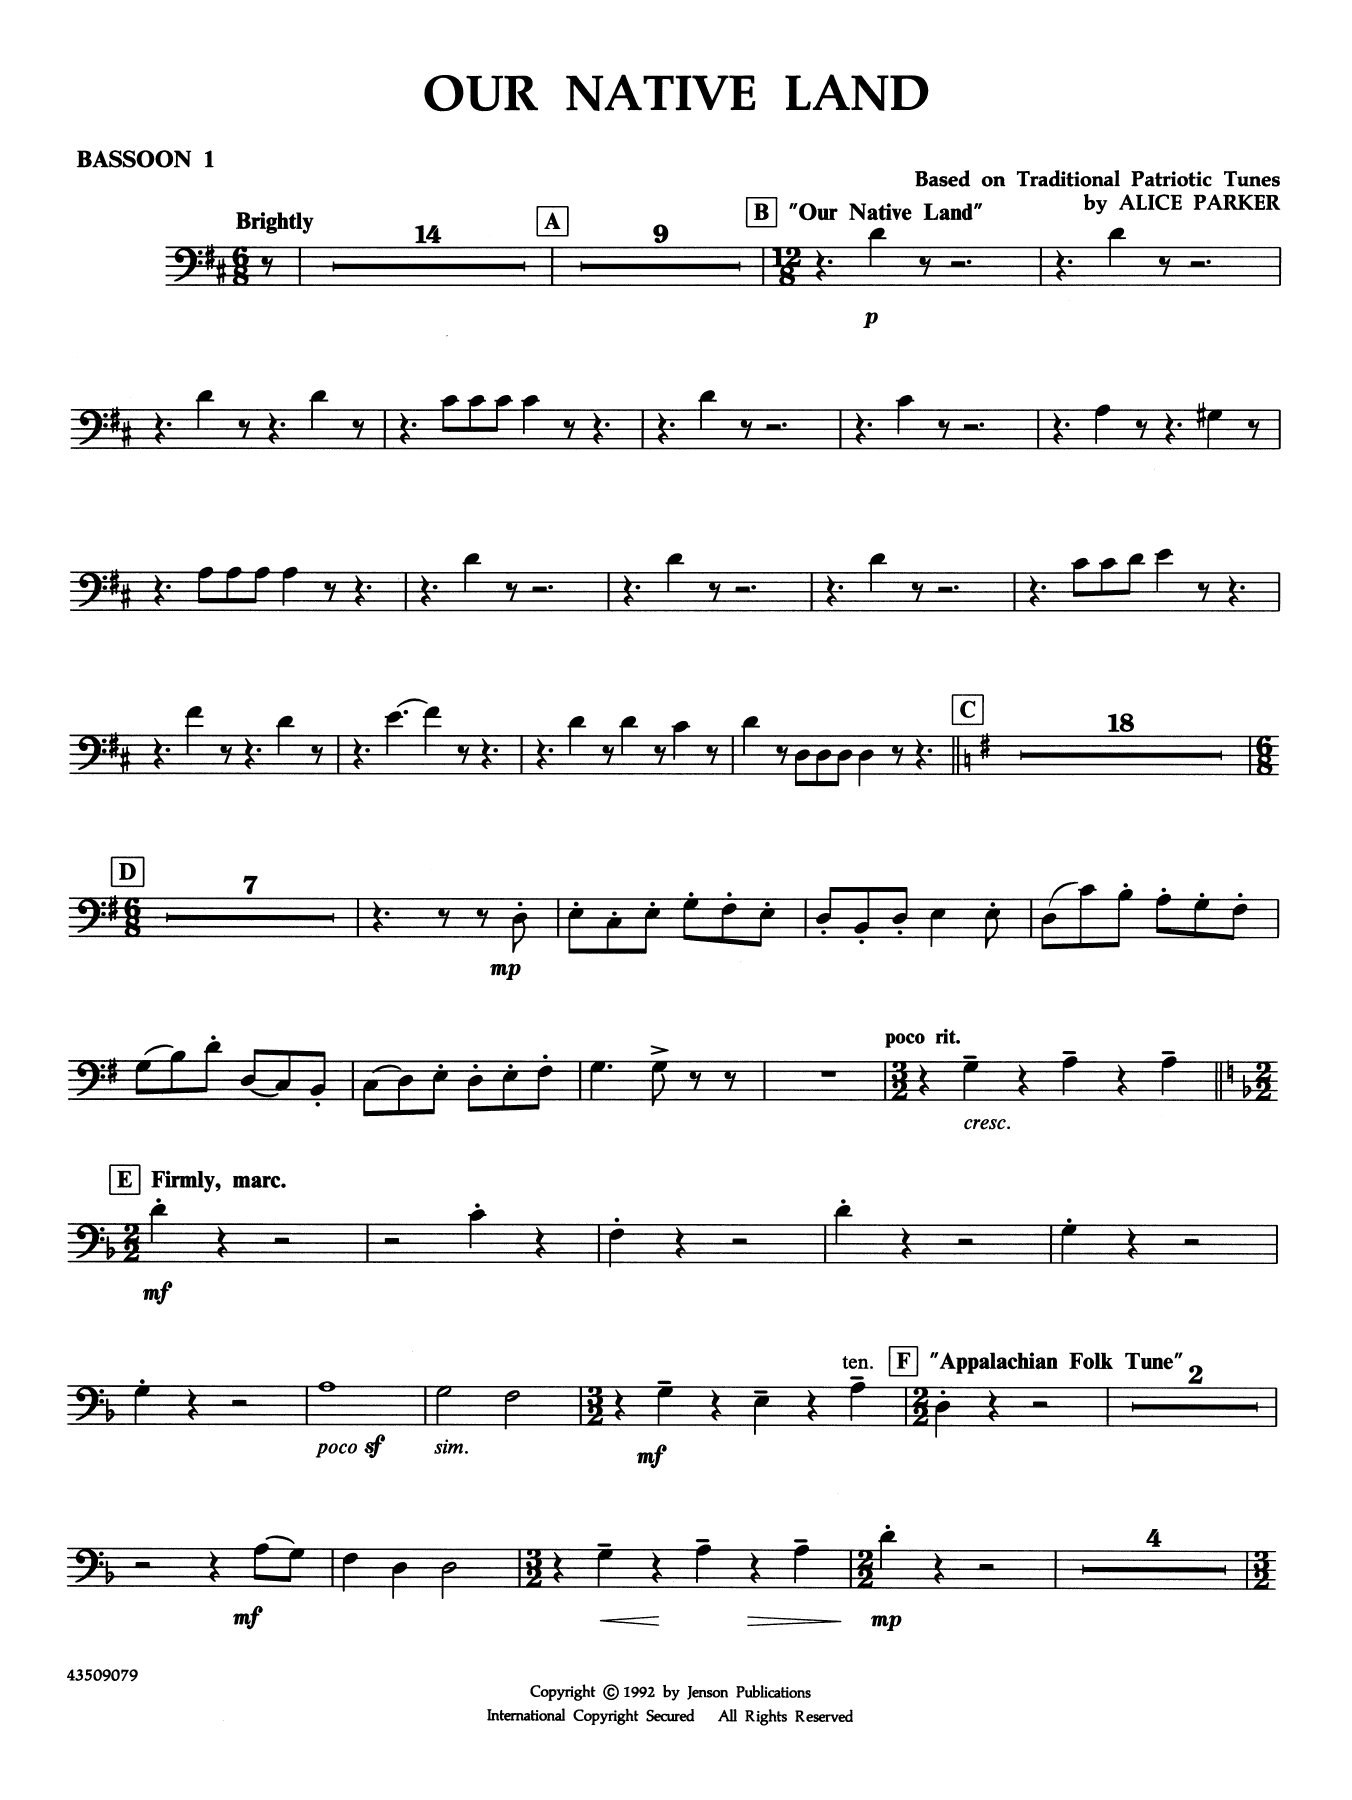 Our Native Land - Bassoon 1 Sheet Music